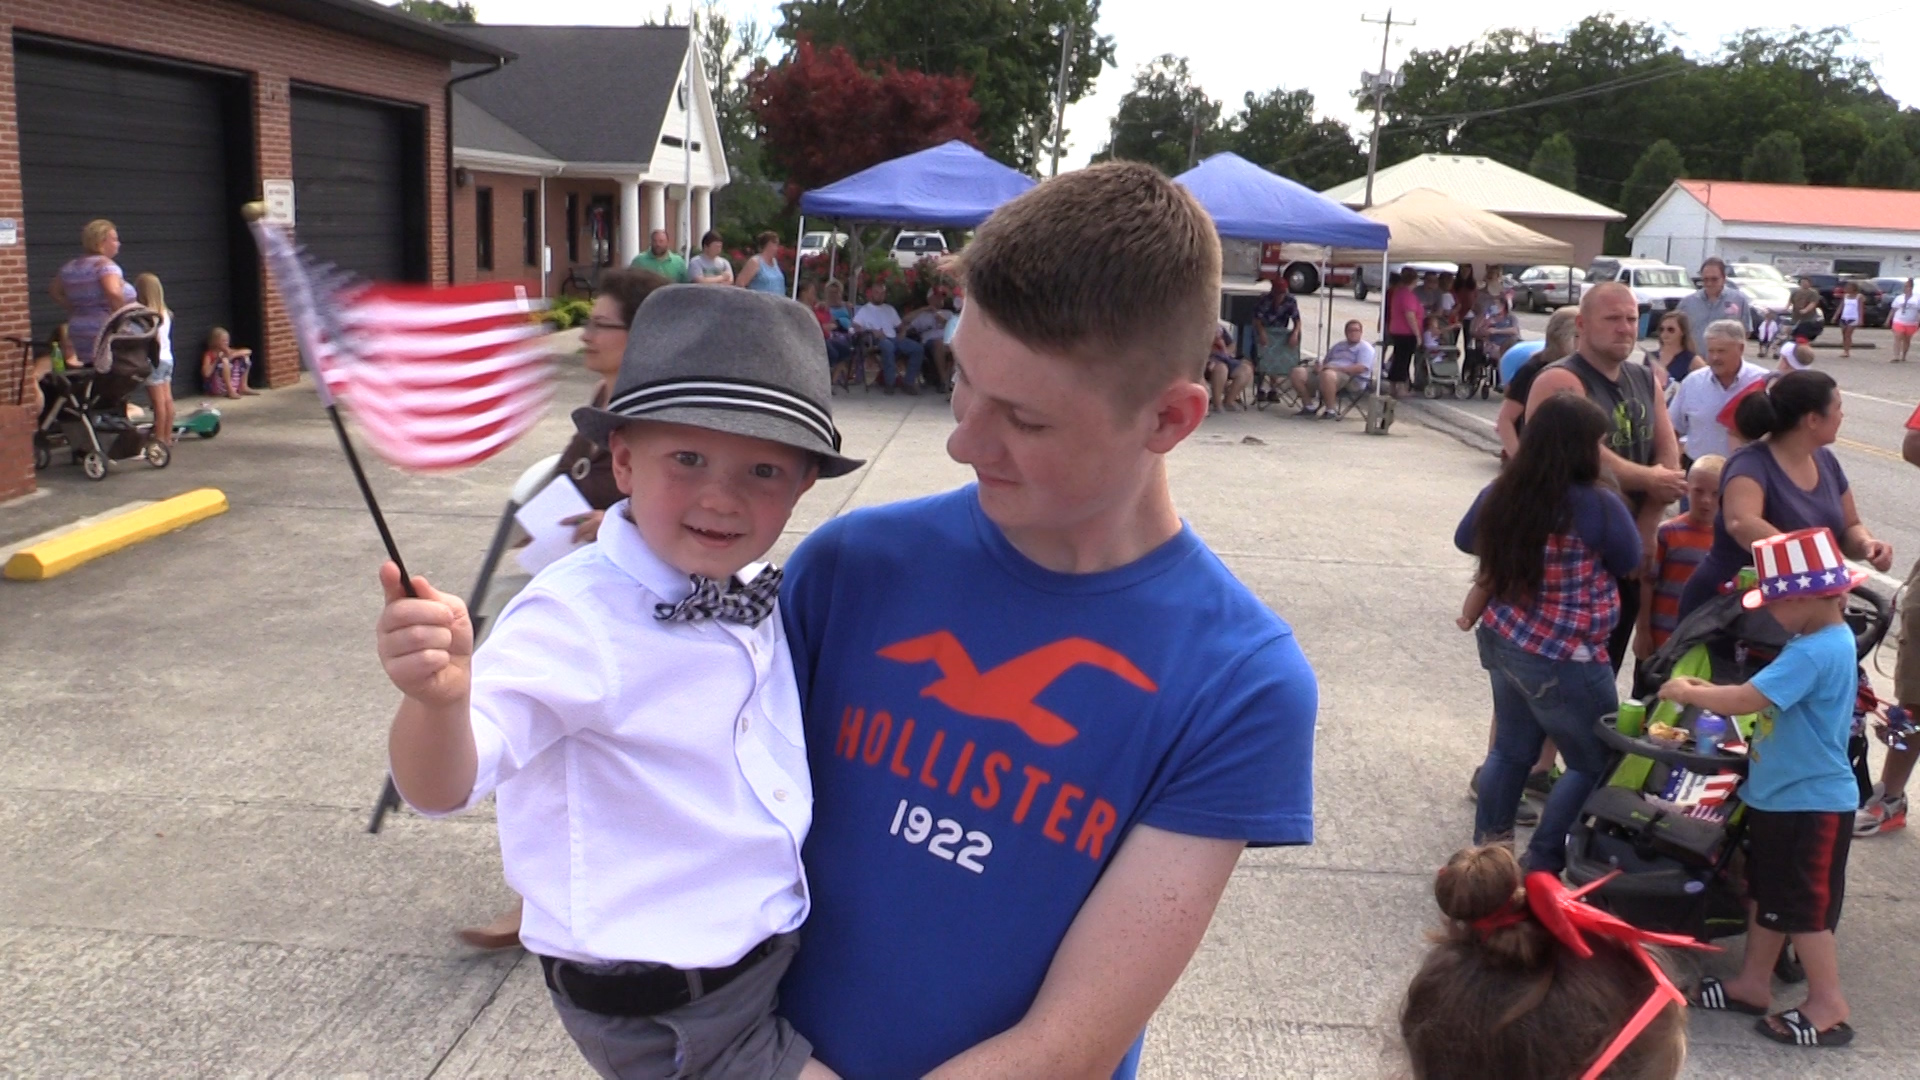 VIDEO - July 4th around Warren County